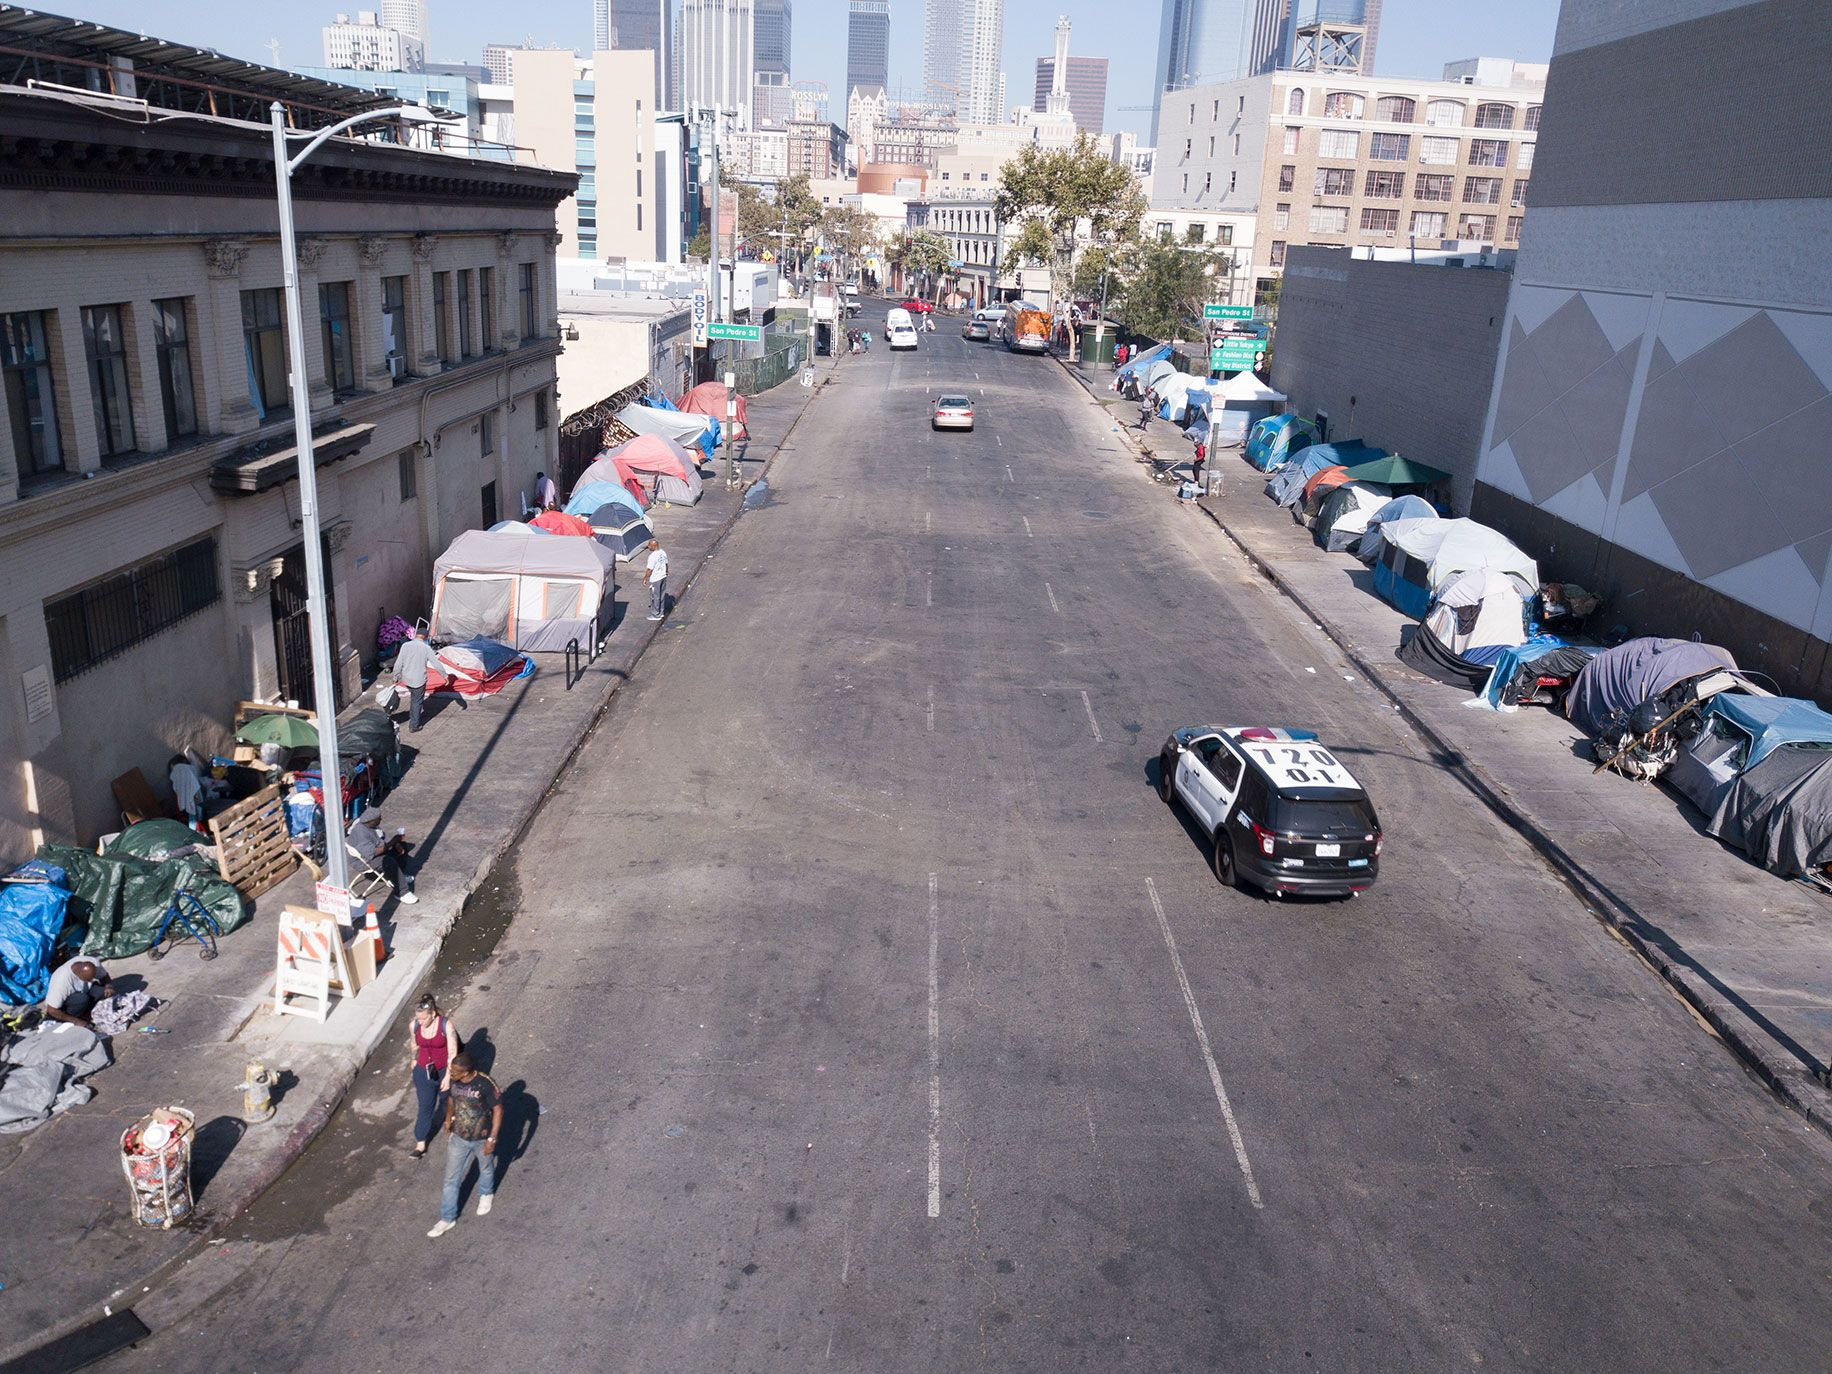 Tents line both sides of Sixth Street, in the heart of Skid Row, just minutes from downtown Los Angeles. This 50-block neighborhood is home to the largest concentration of homeless people in the U.S.